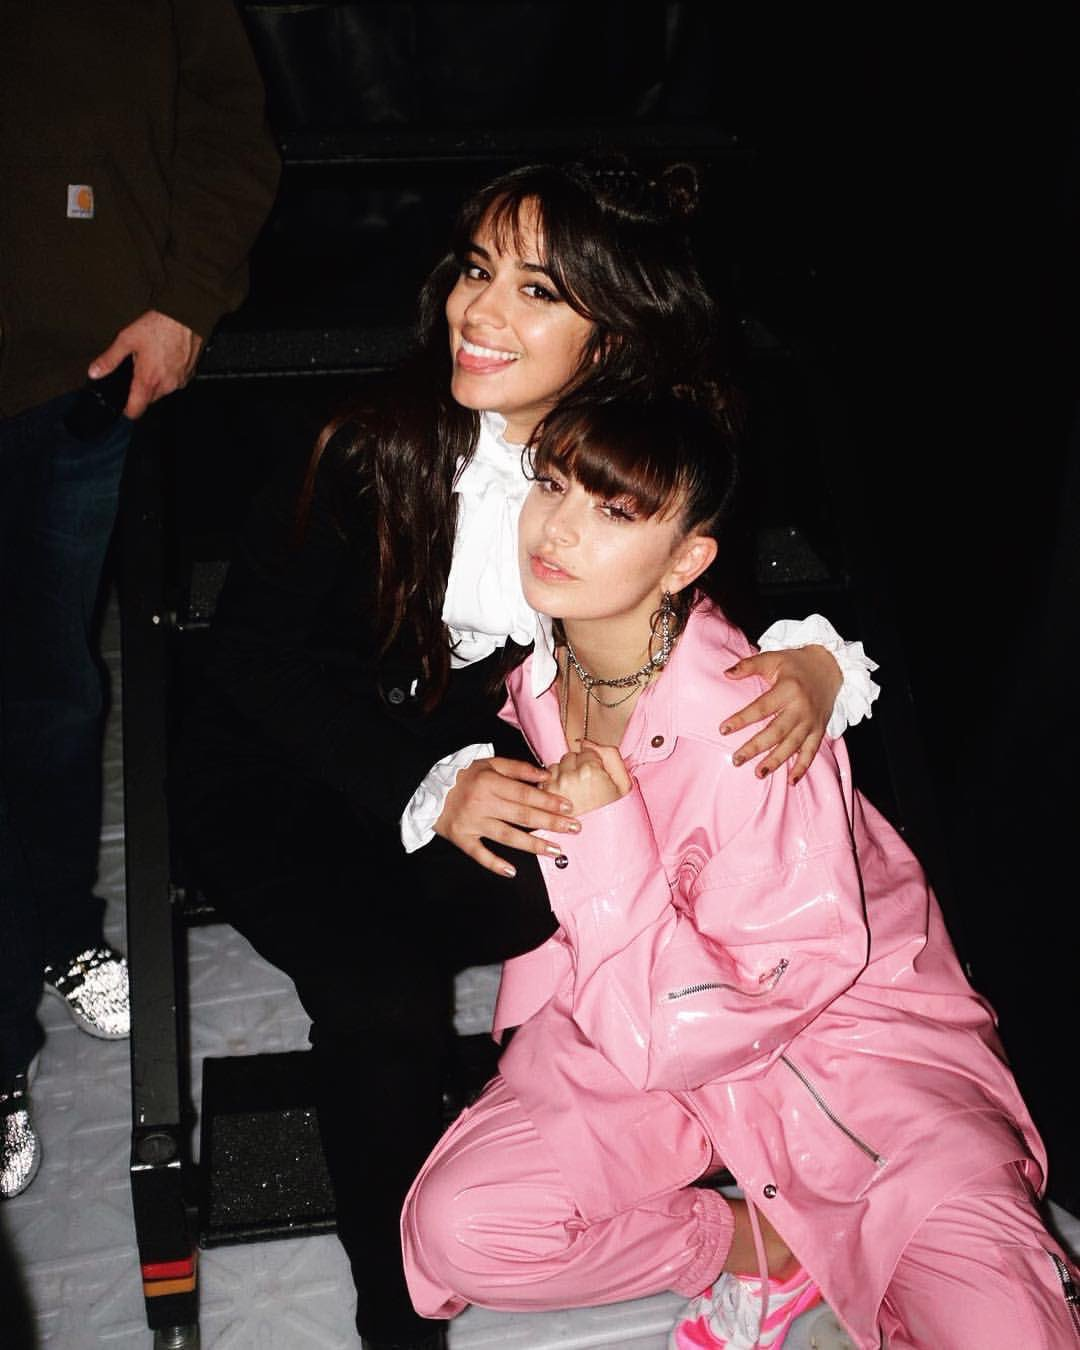 """My #TeenChoice for #ChoiceSongFemaleArtist is """"Havana"""" by @Camila_Cabello and @youngthug https://t.co/REDMWuS2yo"""